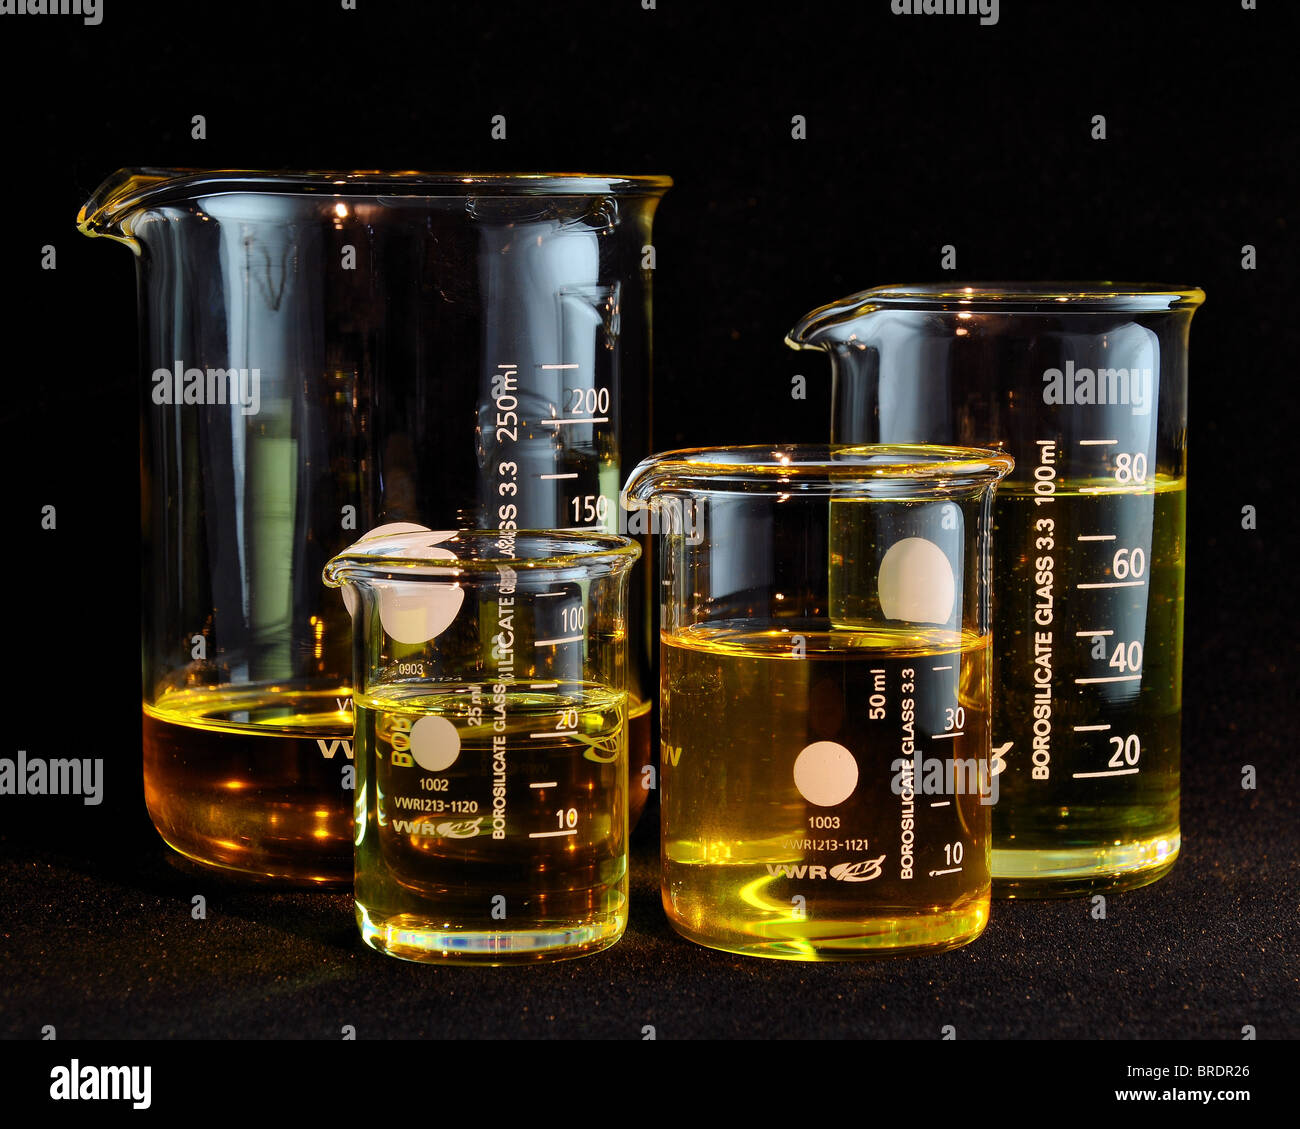 empty Clear glass measuring beakers  in a group 25ml 50ml 100ml 250ml all containing carrier oil oils against Stock Photo